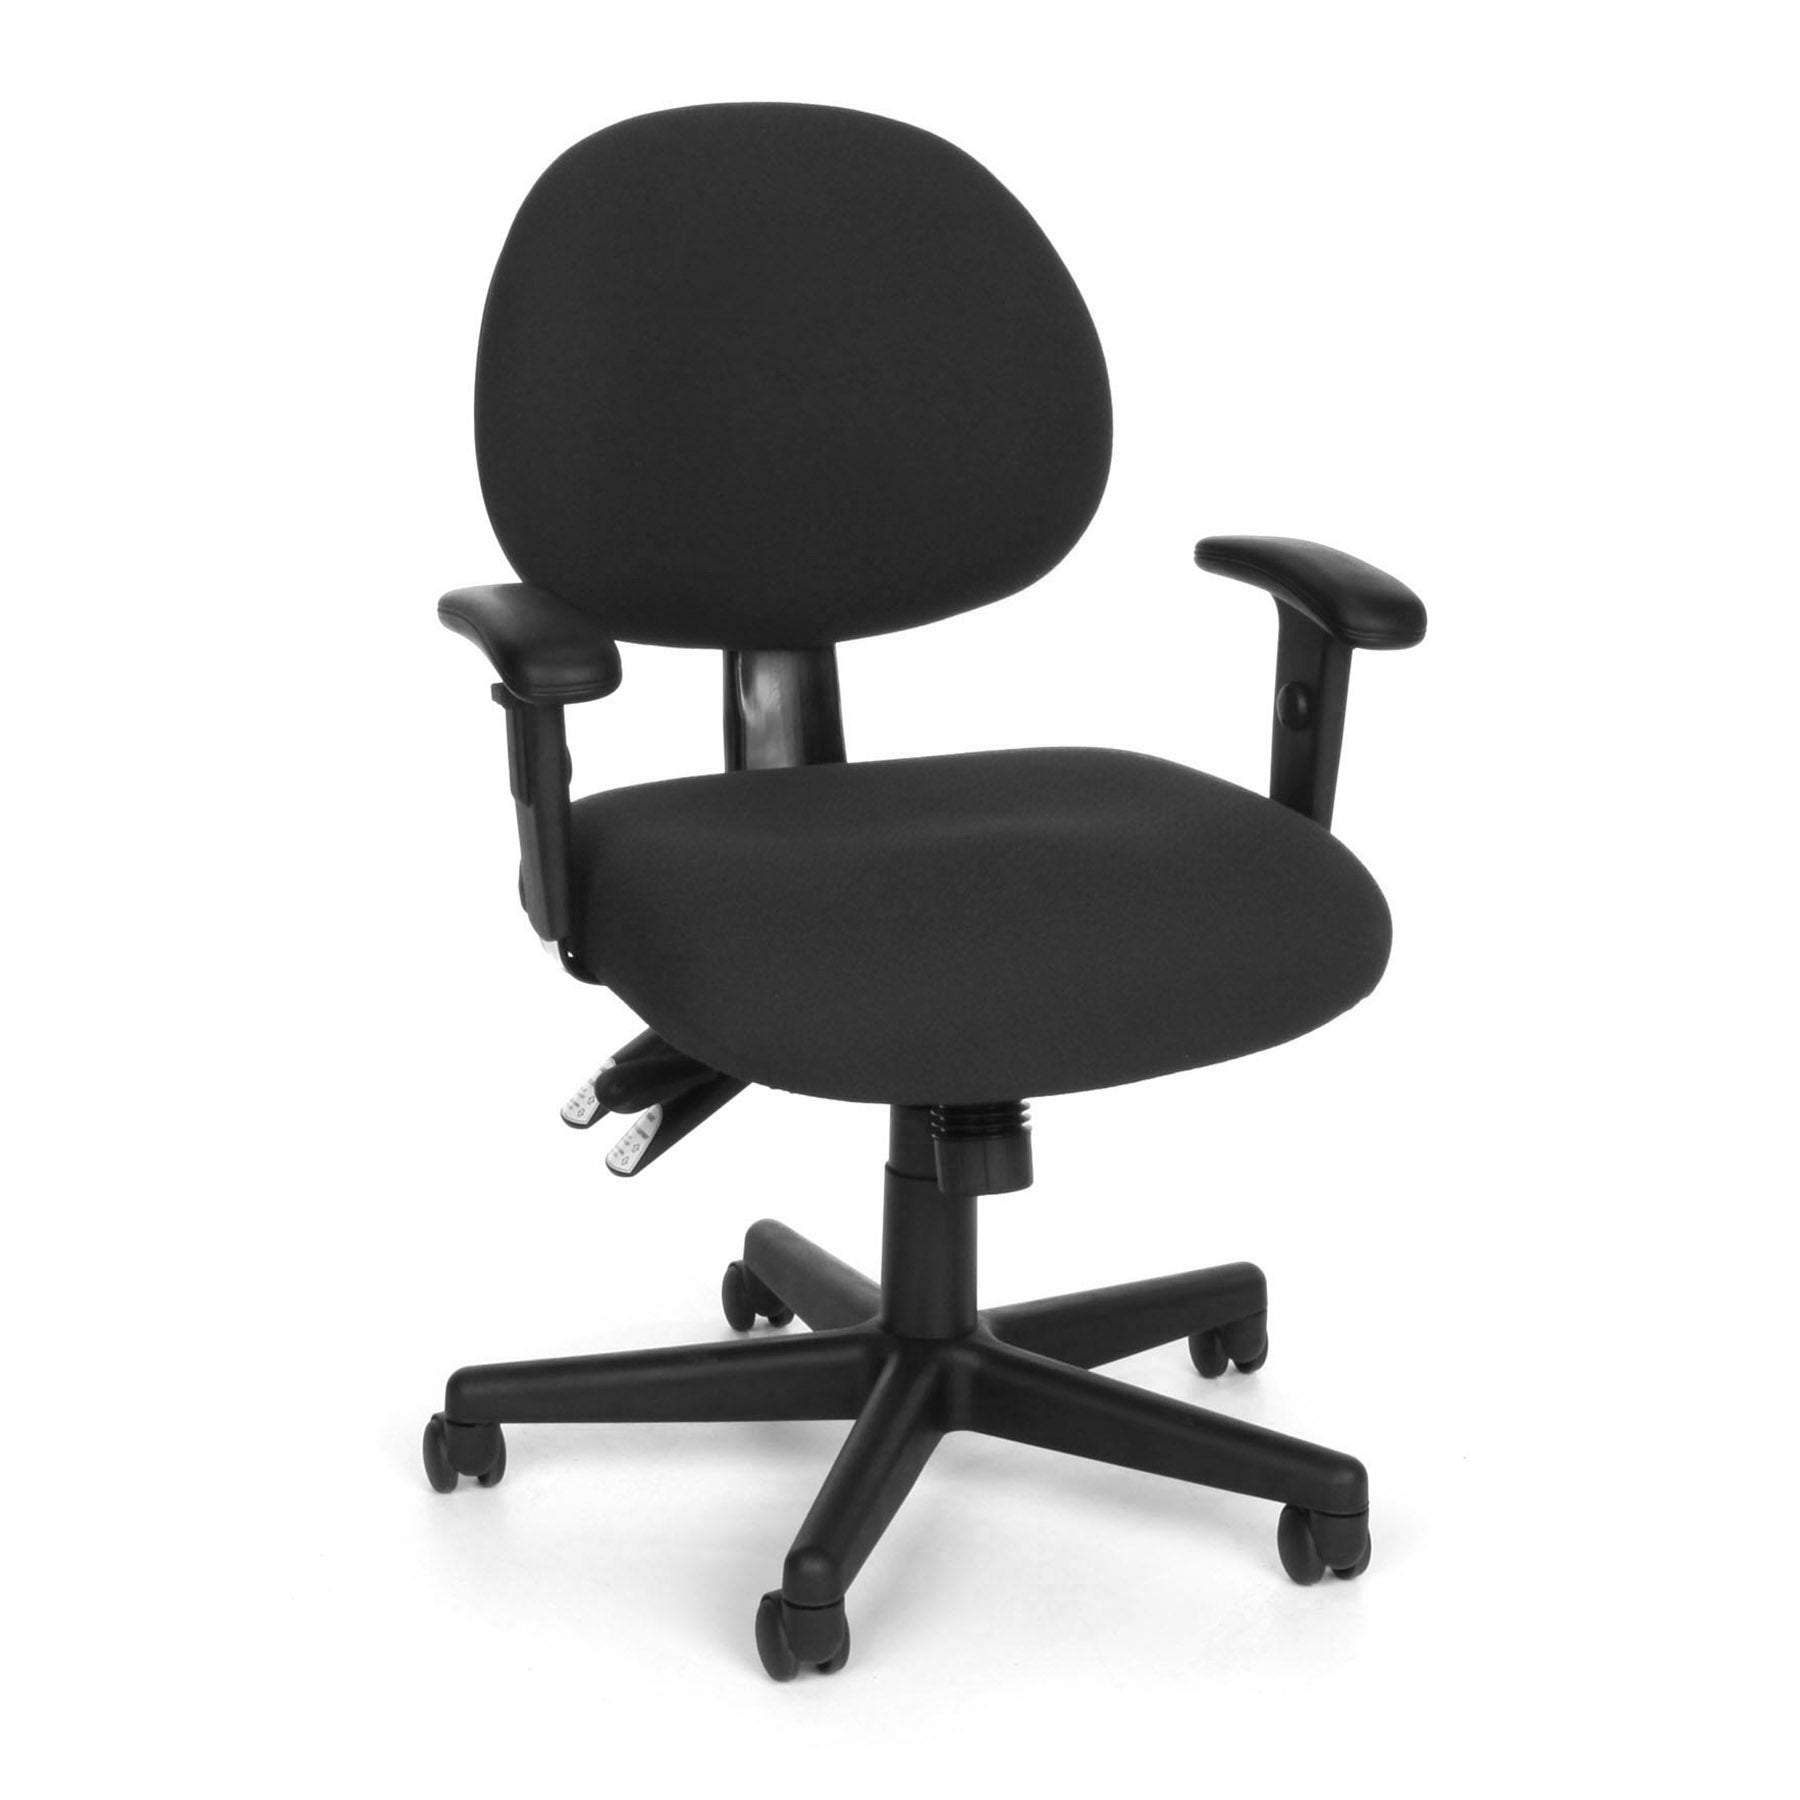 Ergonomic Multi-Adjustable Upholstered Task Computer Arms Chair